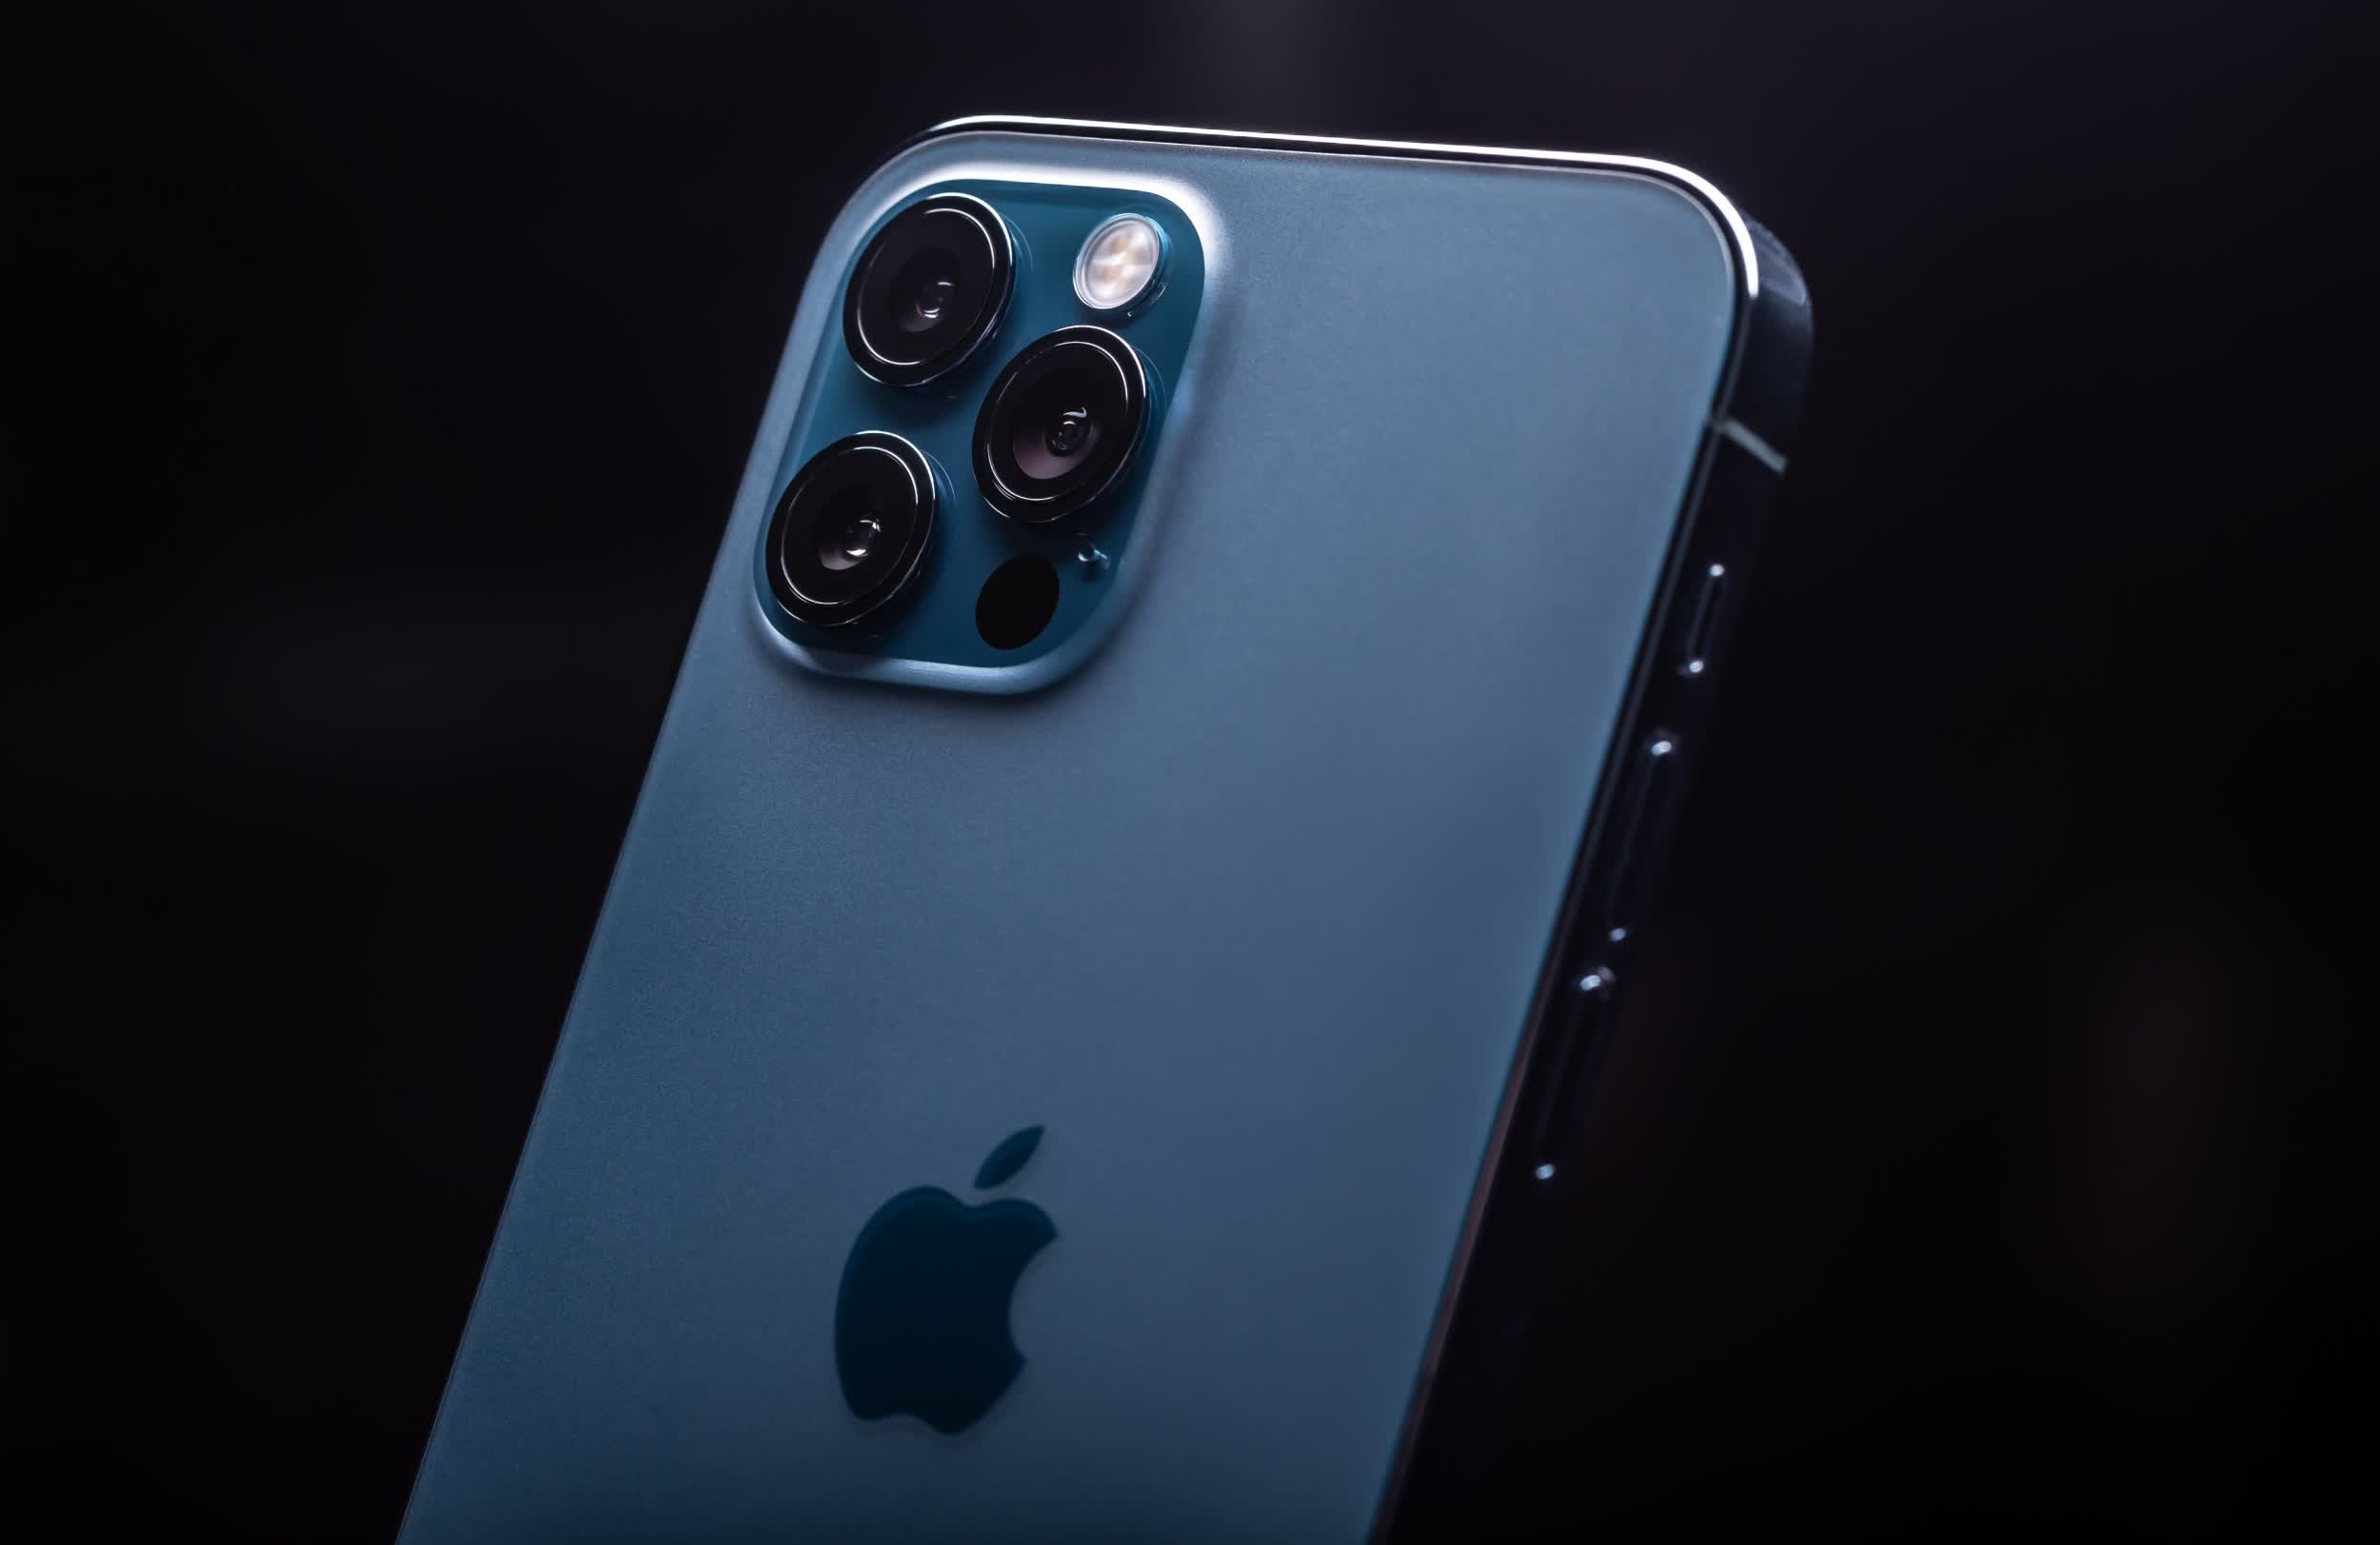 The iPhone 13 will feature Apple's most impressive camera system to date